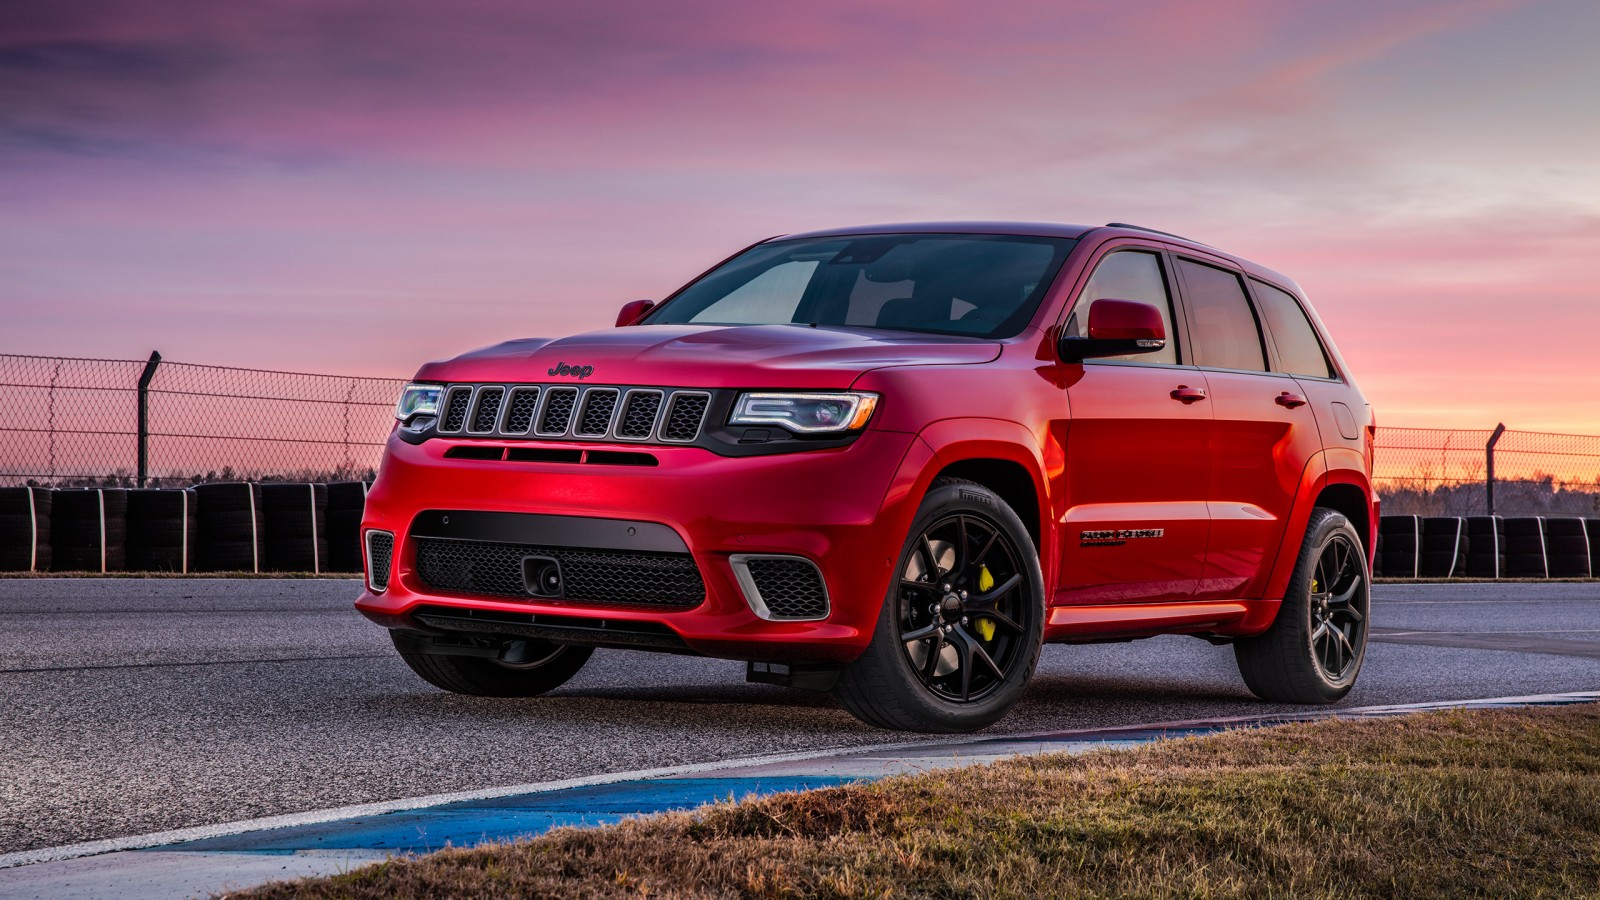 2018 jeep grand cherokee trackhawk wallpapers hd wallpapers